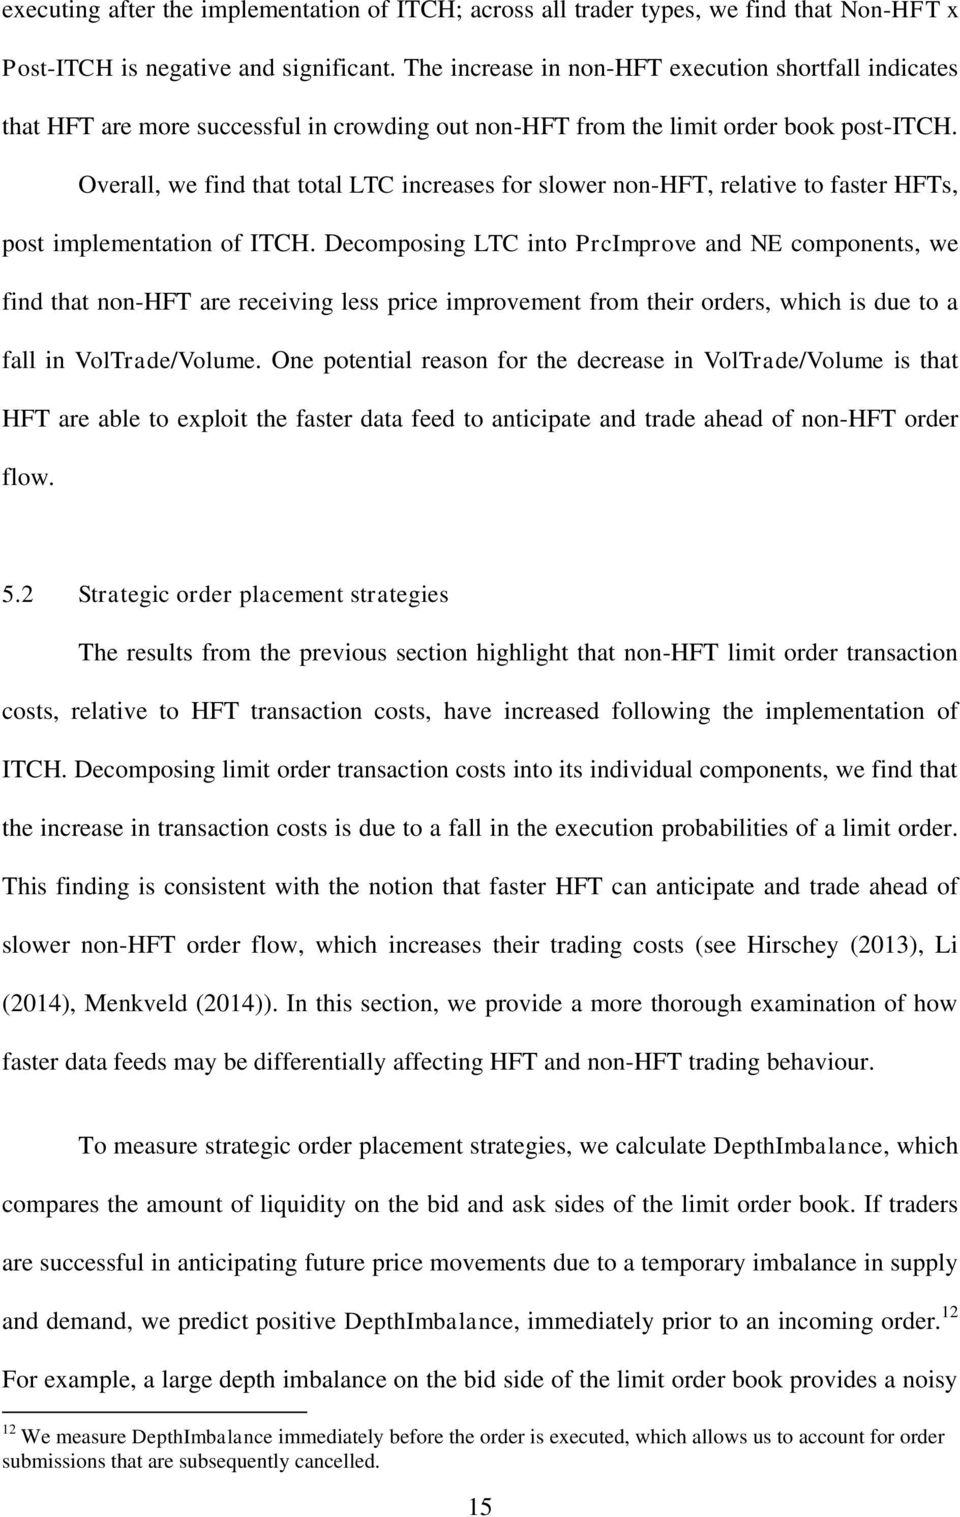 Overall, we find that total LTC increases for slower non-hft, relative to faster HFTs, post implementation of ITCH.